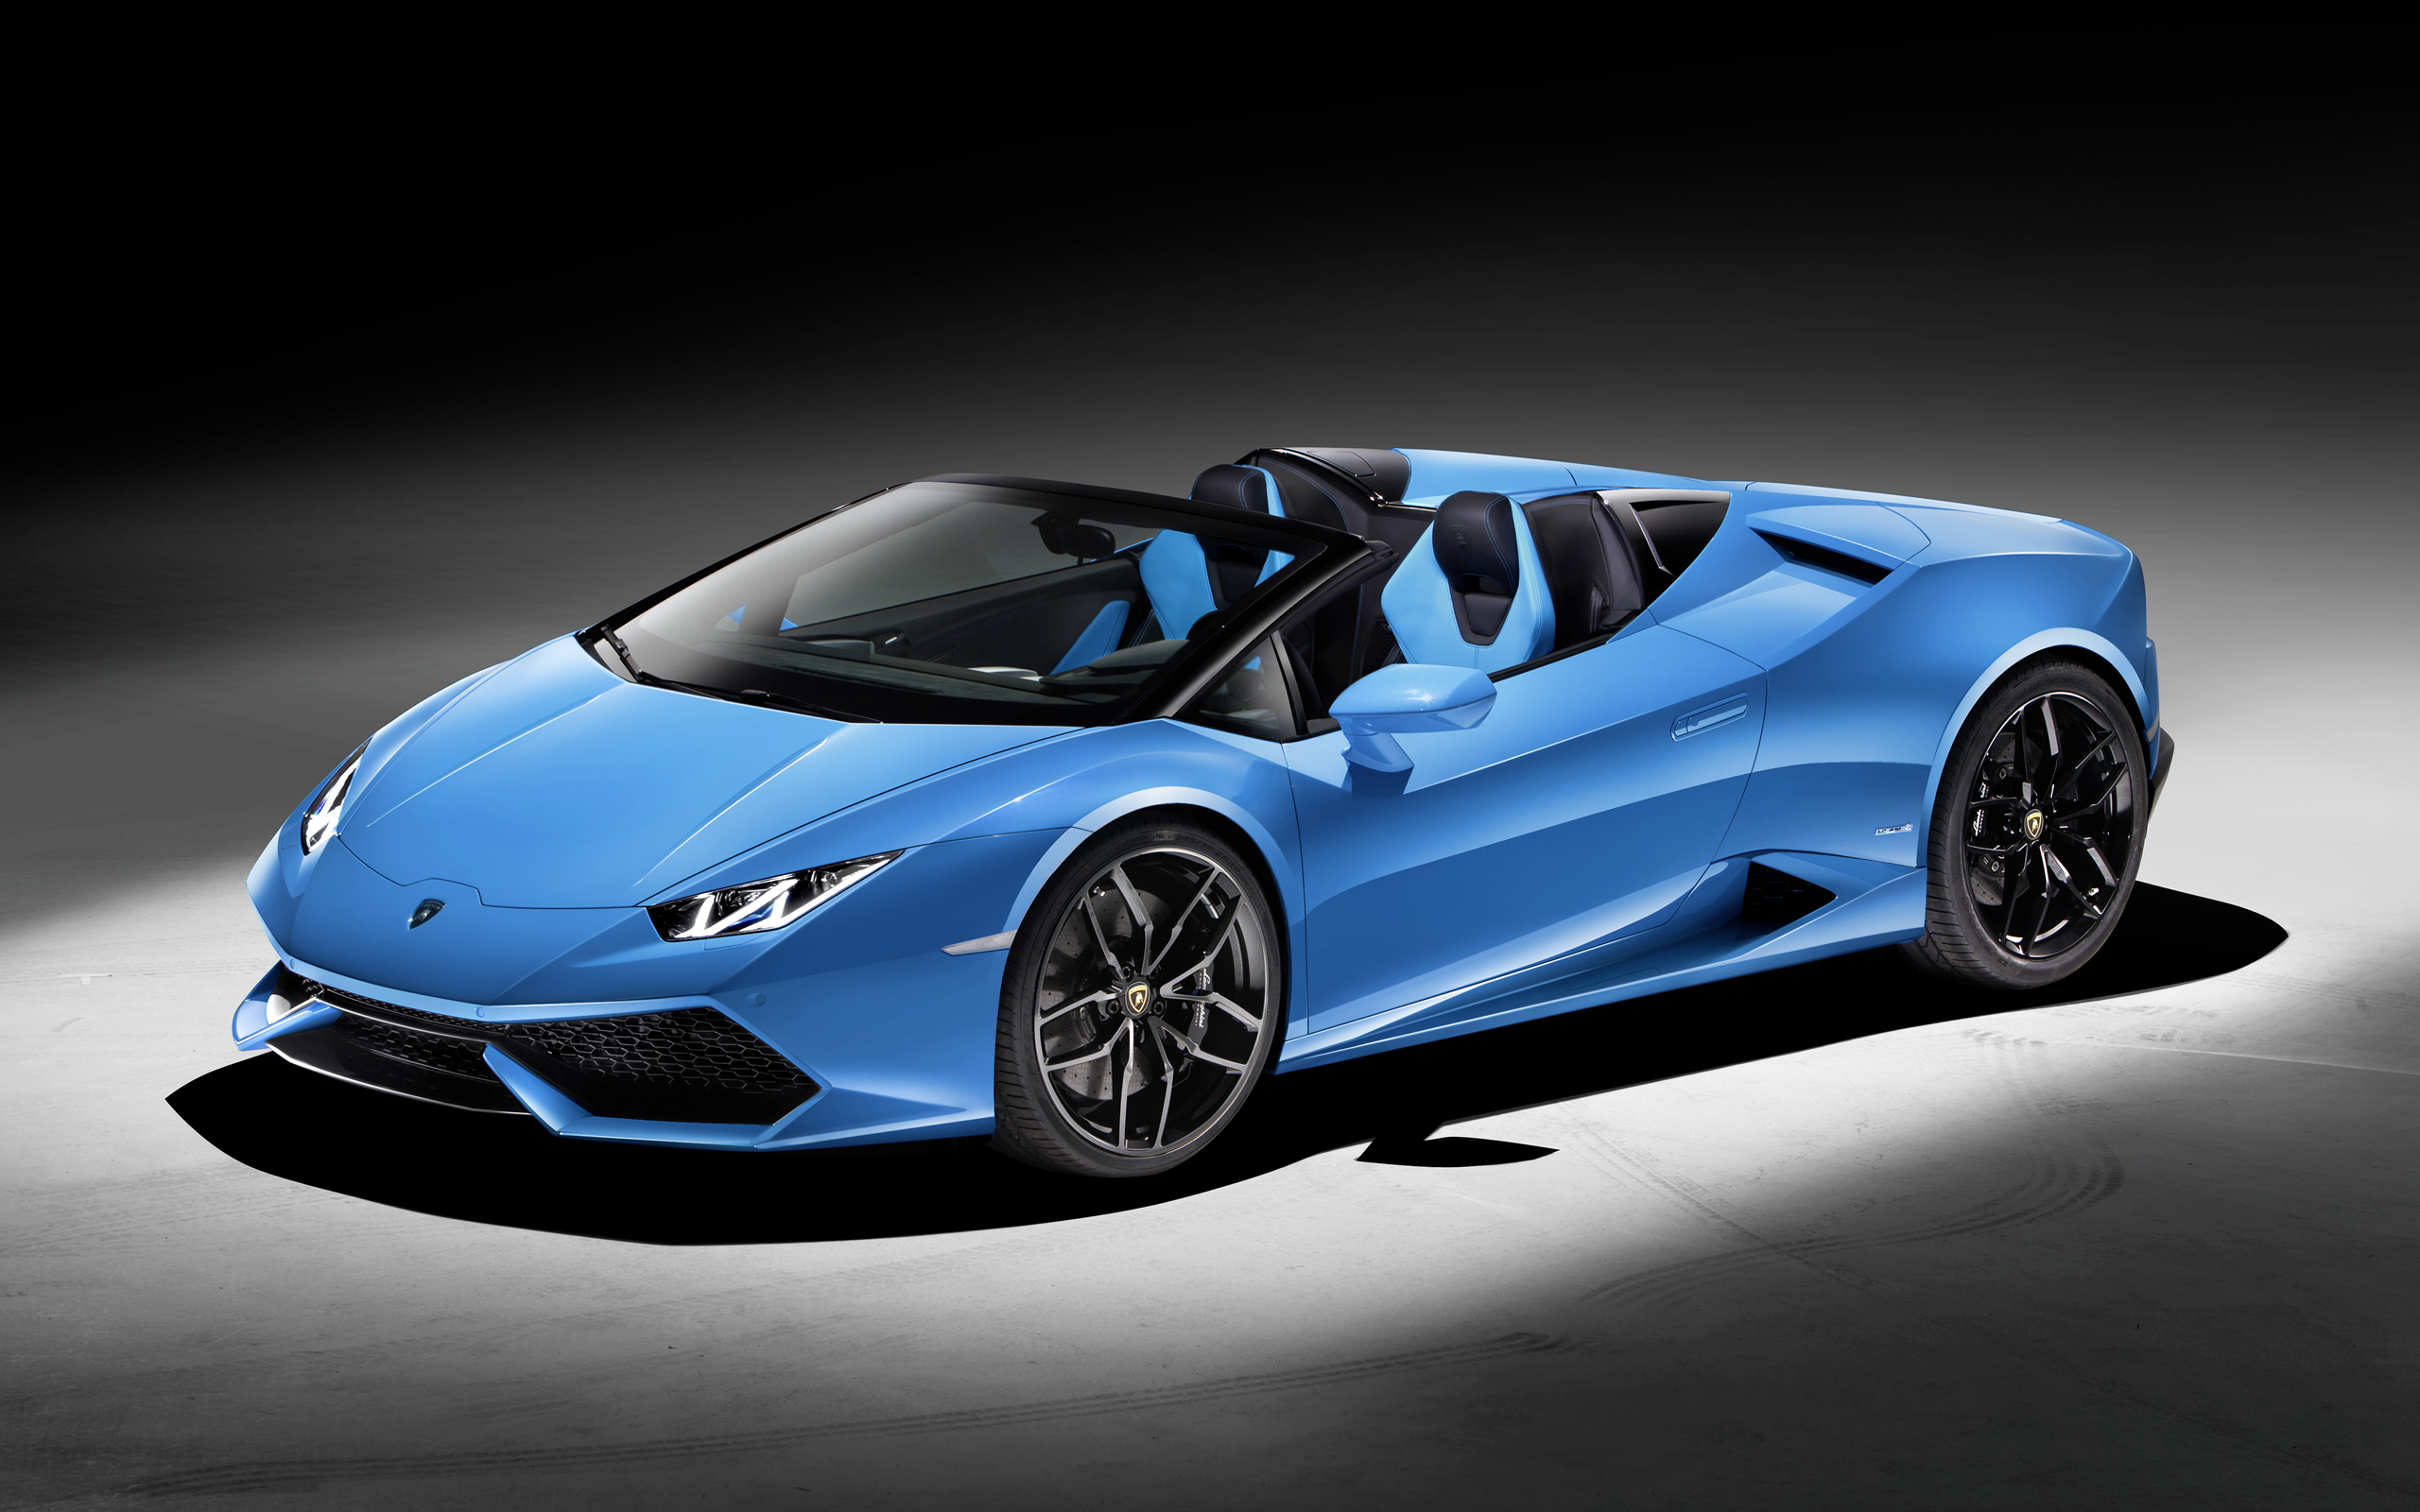 2016 lamborghini huracan lp 610 4 spyder 2 wallpaper hd car wallpapers. Black Bedroom Furniture Sets. Home Design Ideas